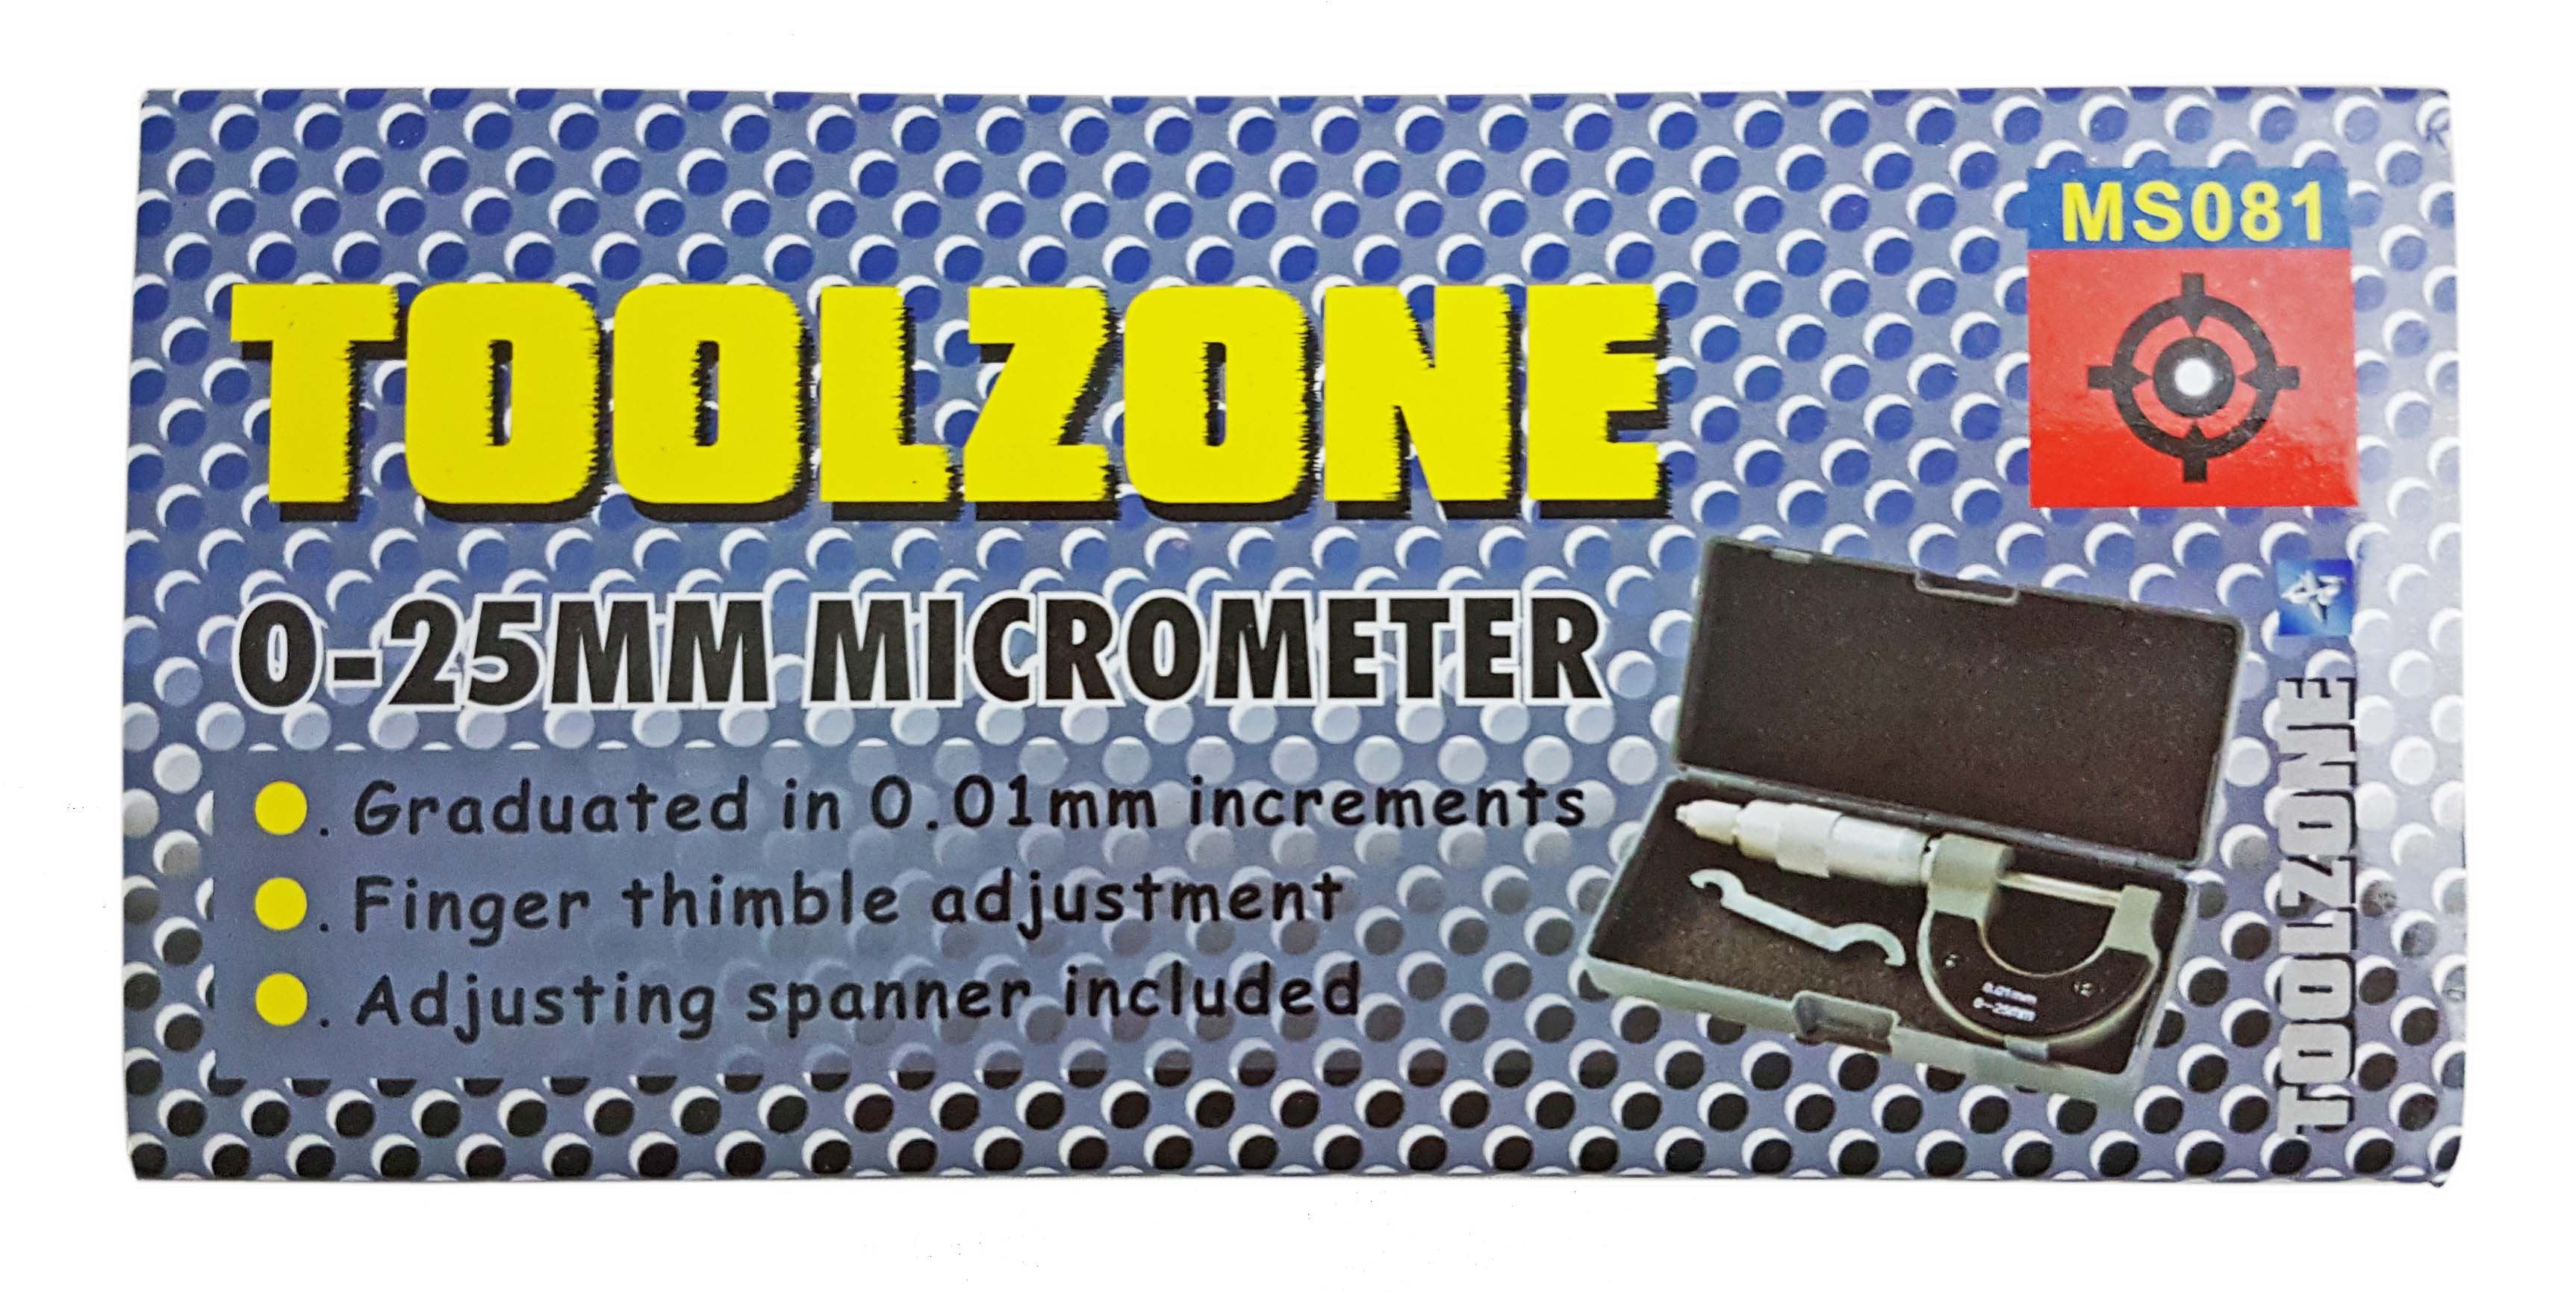 Toolzone 0-25Mm Micrometer In Case